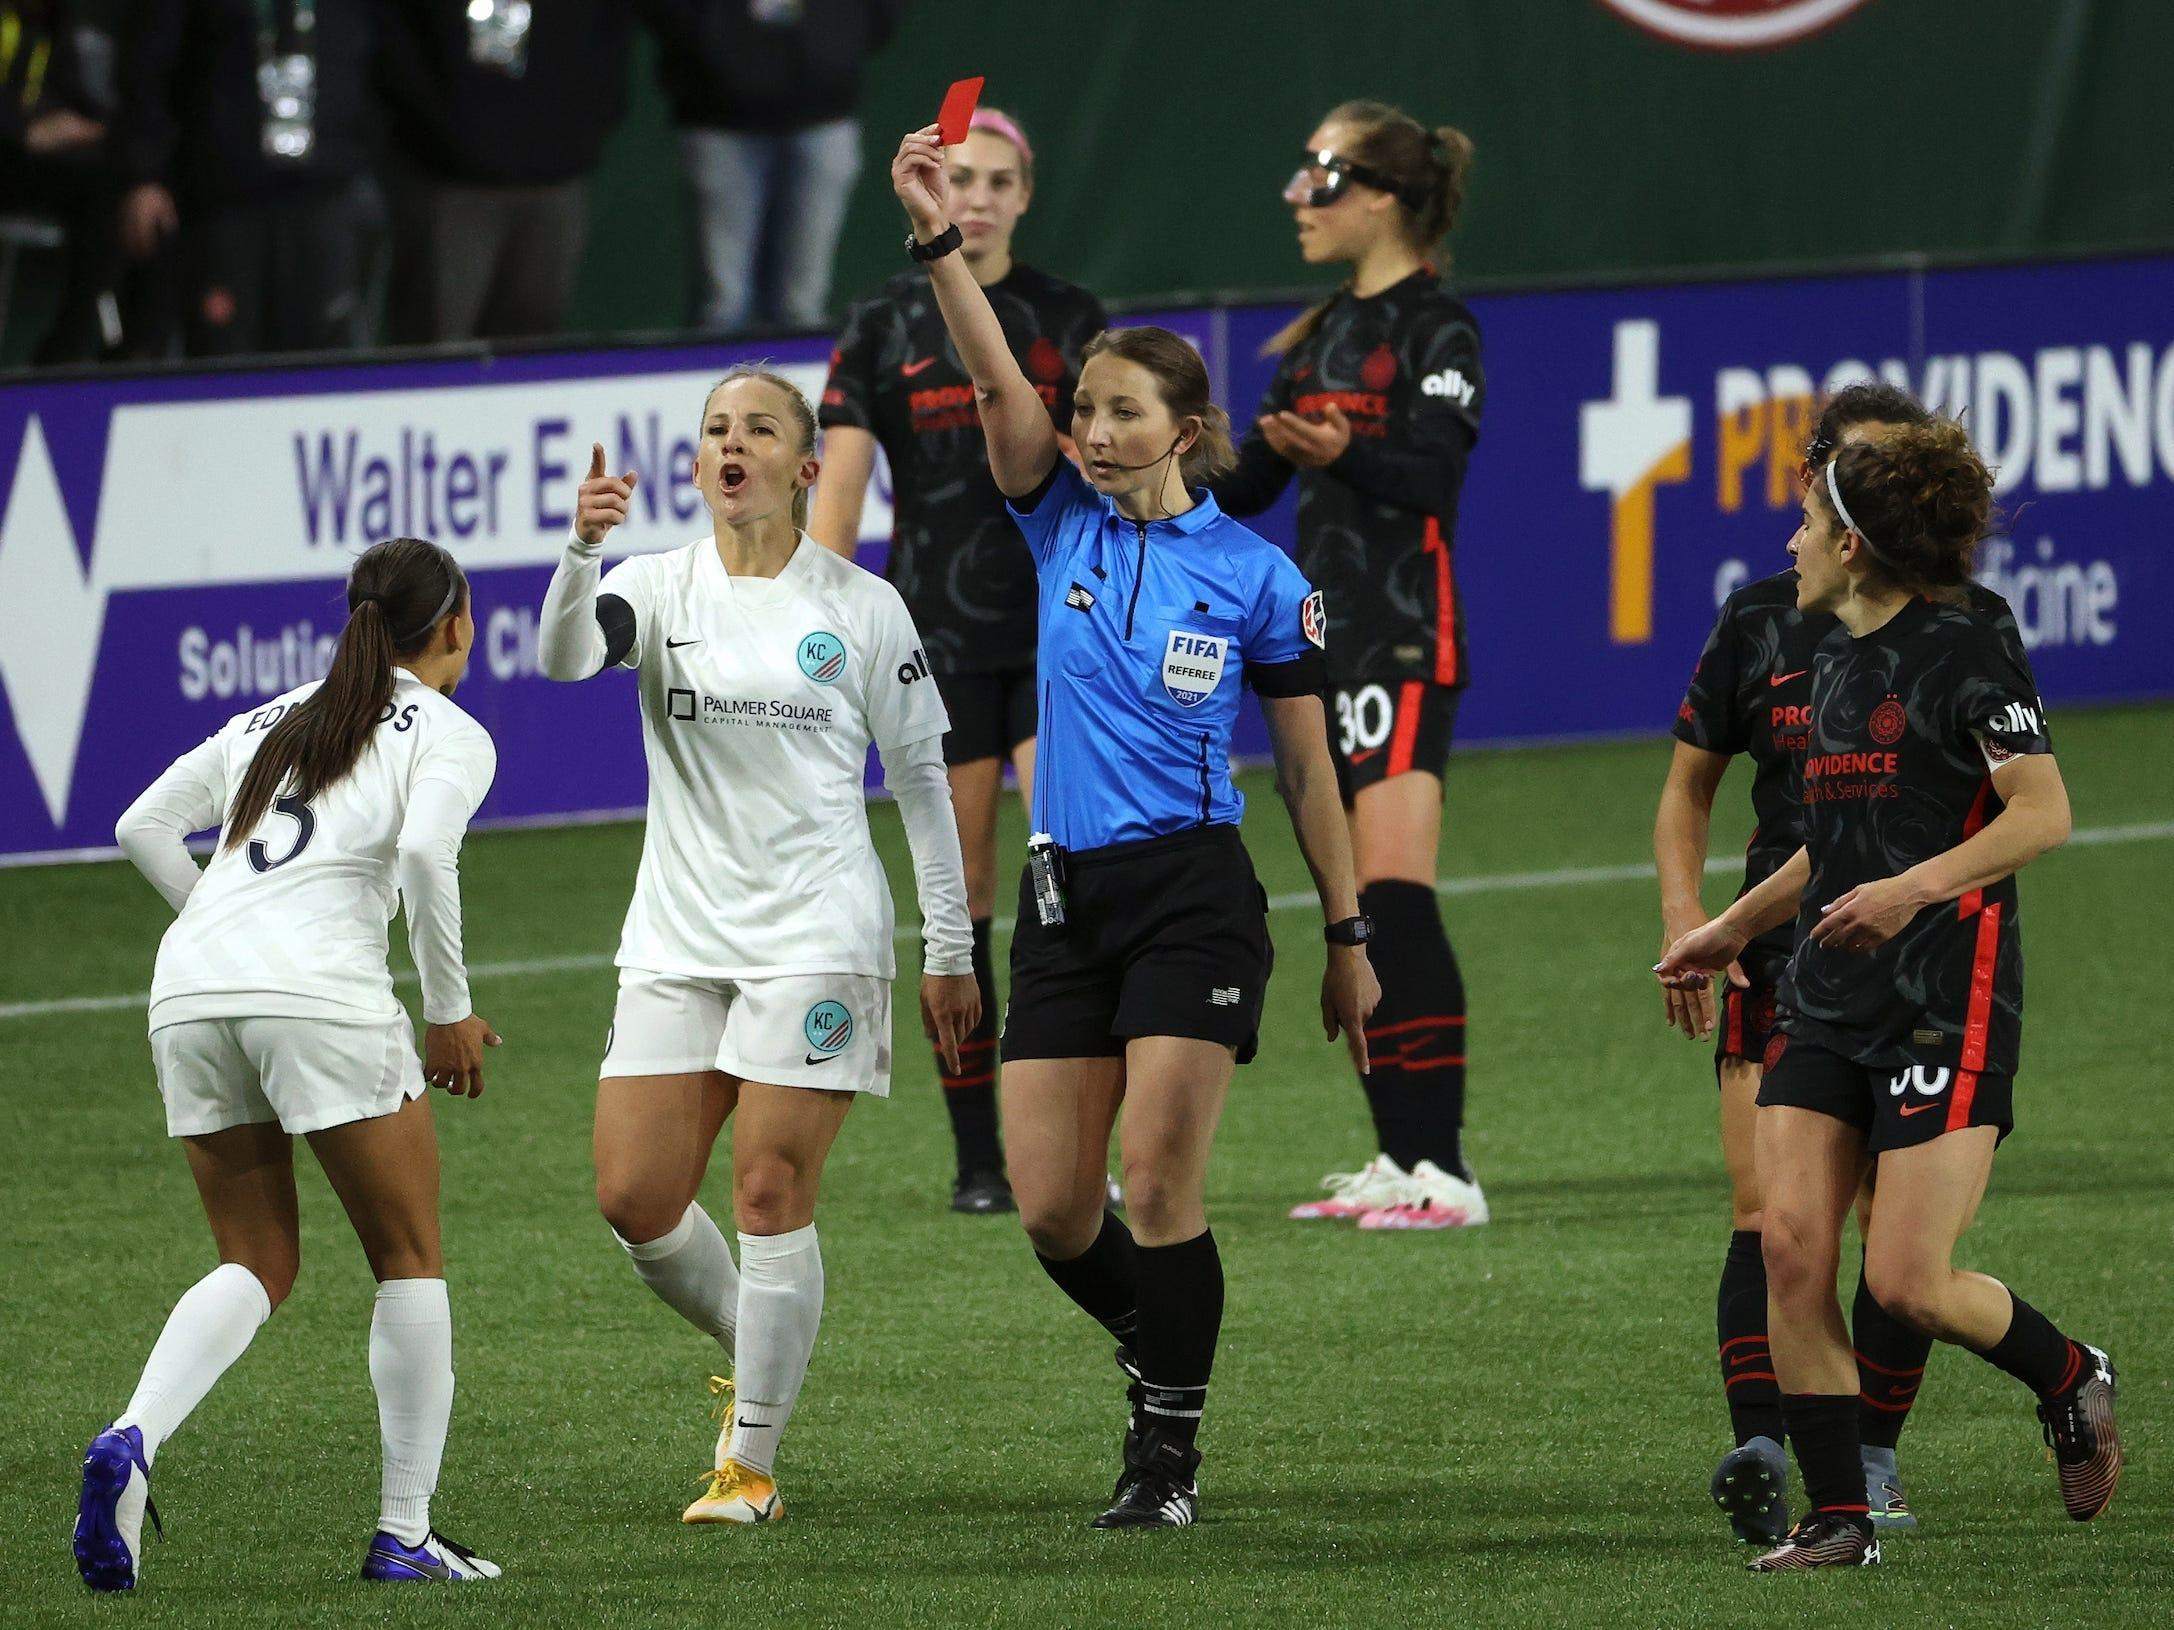 Refs pulled 4 red cards in 4 minutes as a wrestling match unfolded in stoppage time of an opening-night NWSL game